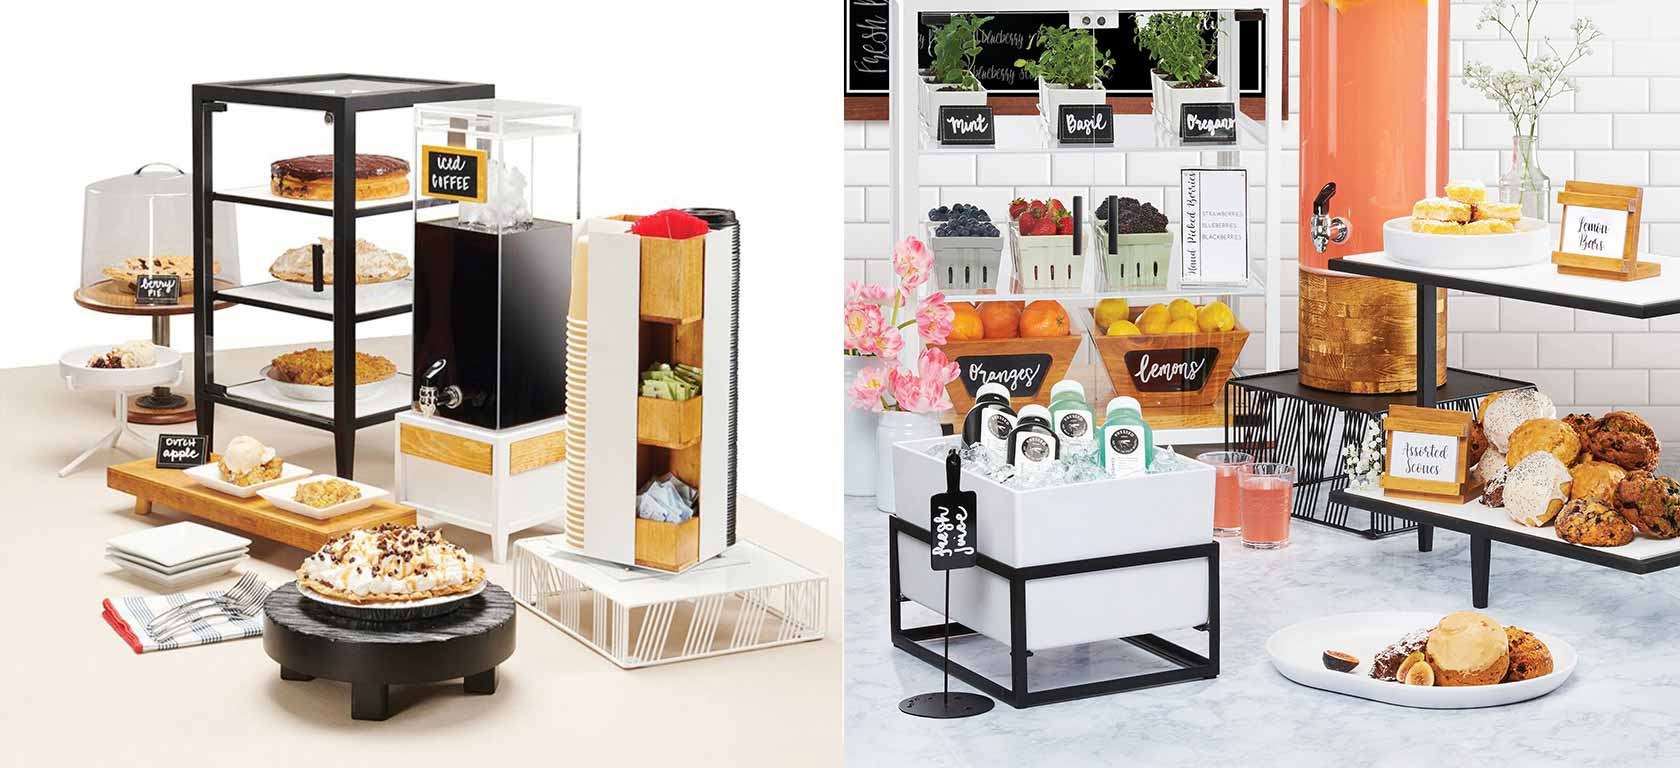 On the left a coffee and warm beverage display on white metal risers; on the right, a bakery and pastry display on black metal risers.